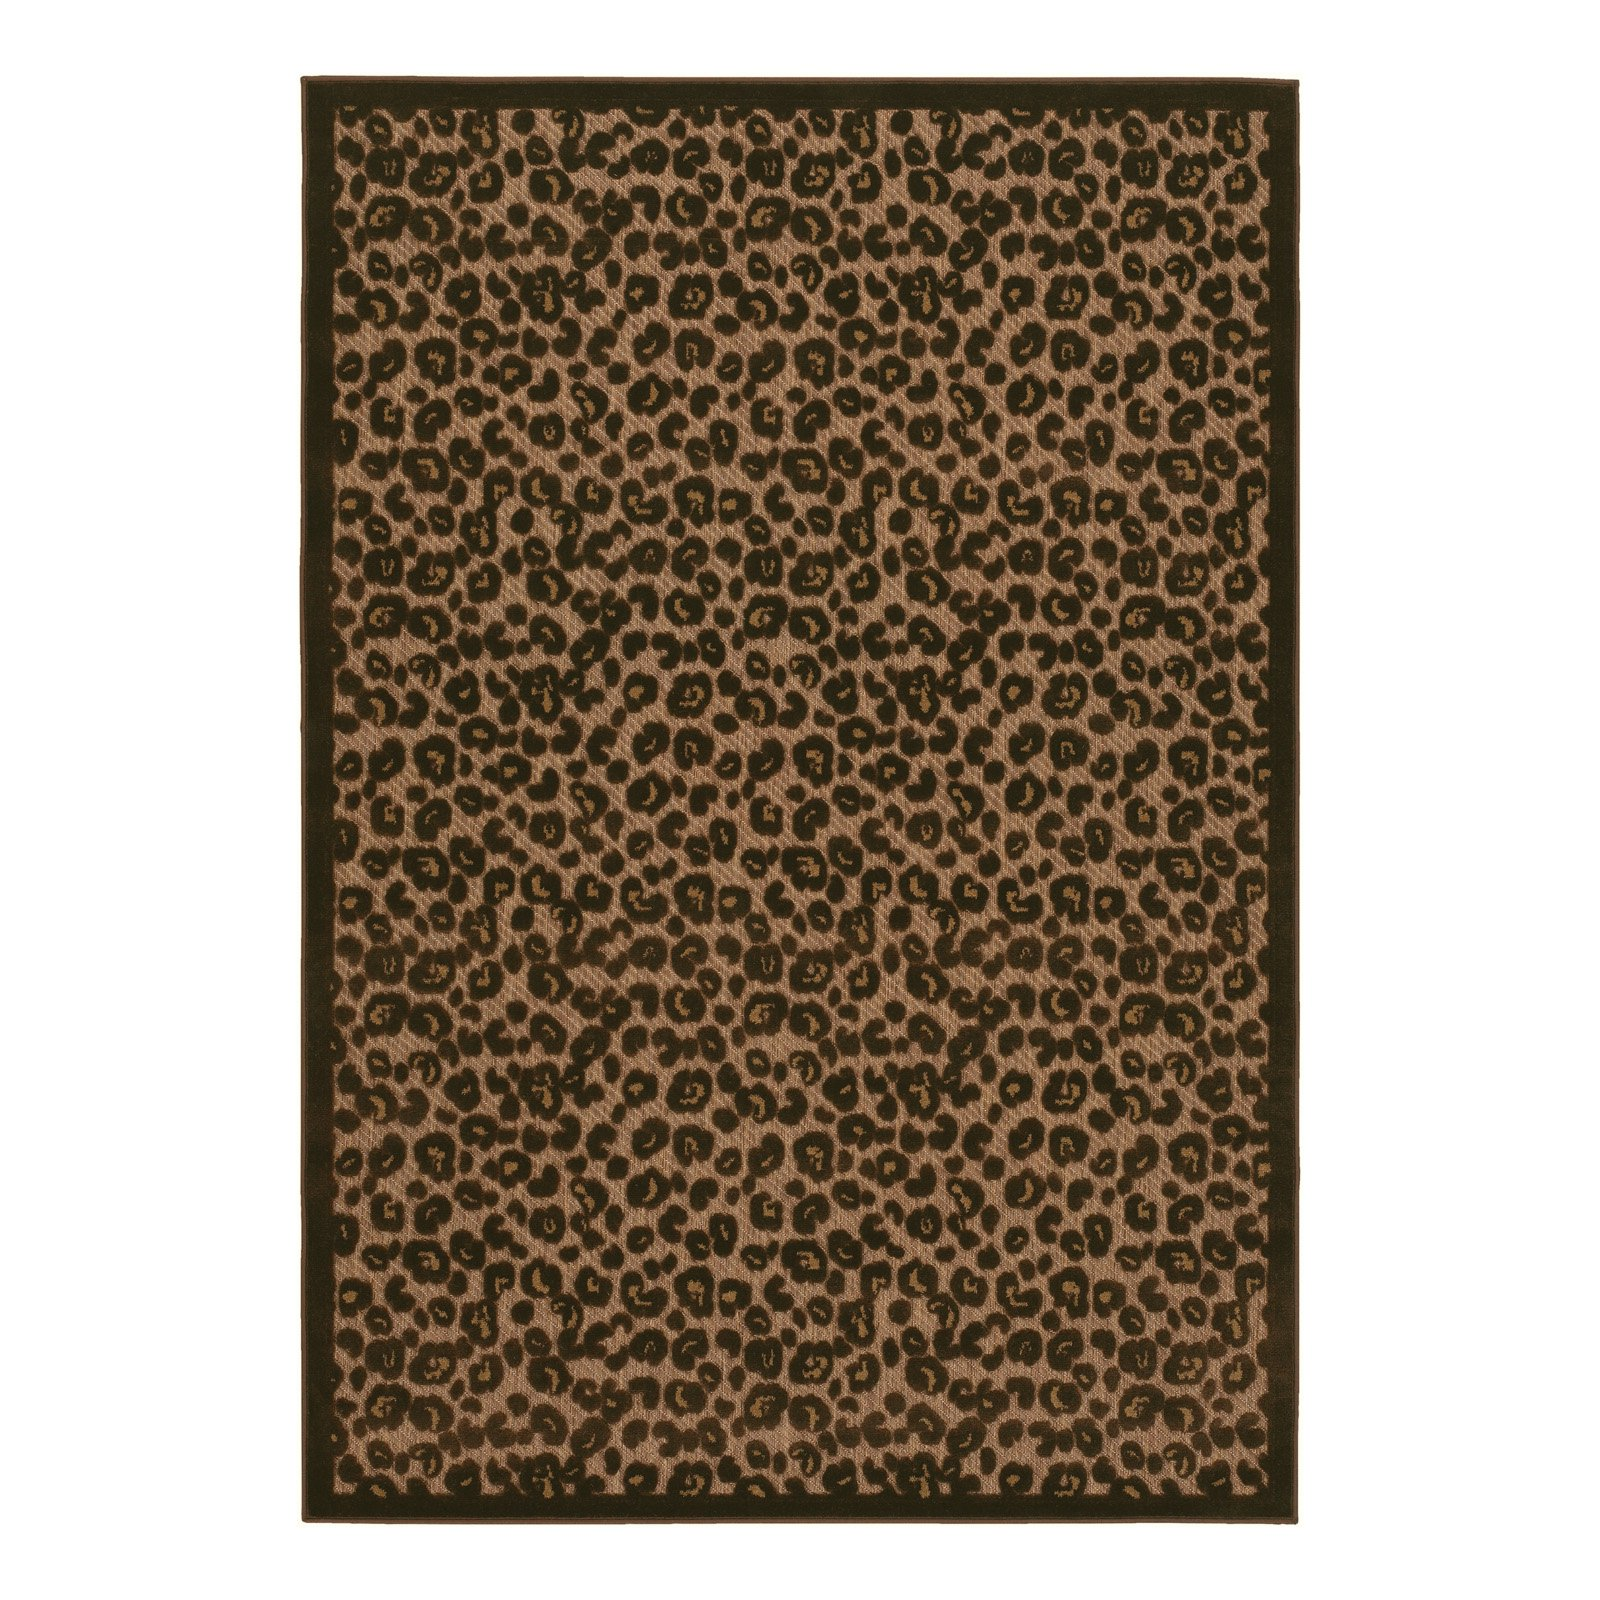 Couristan Urbane Captivity Tan & Brown In/Out Rug, 2'x3'7' - 57343435020037T